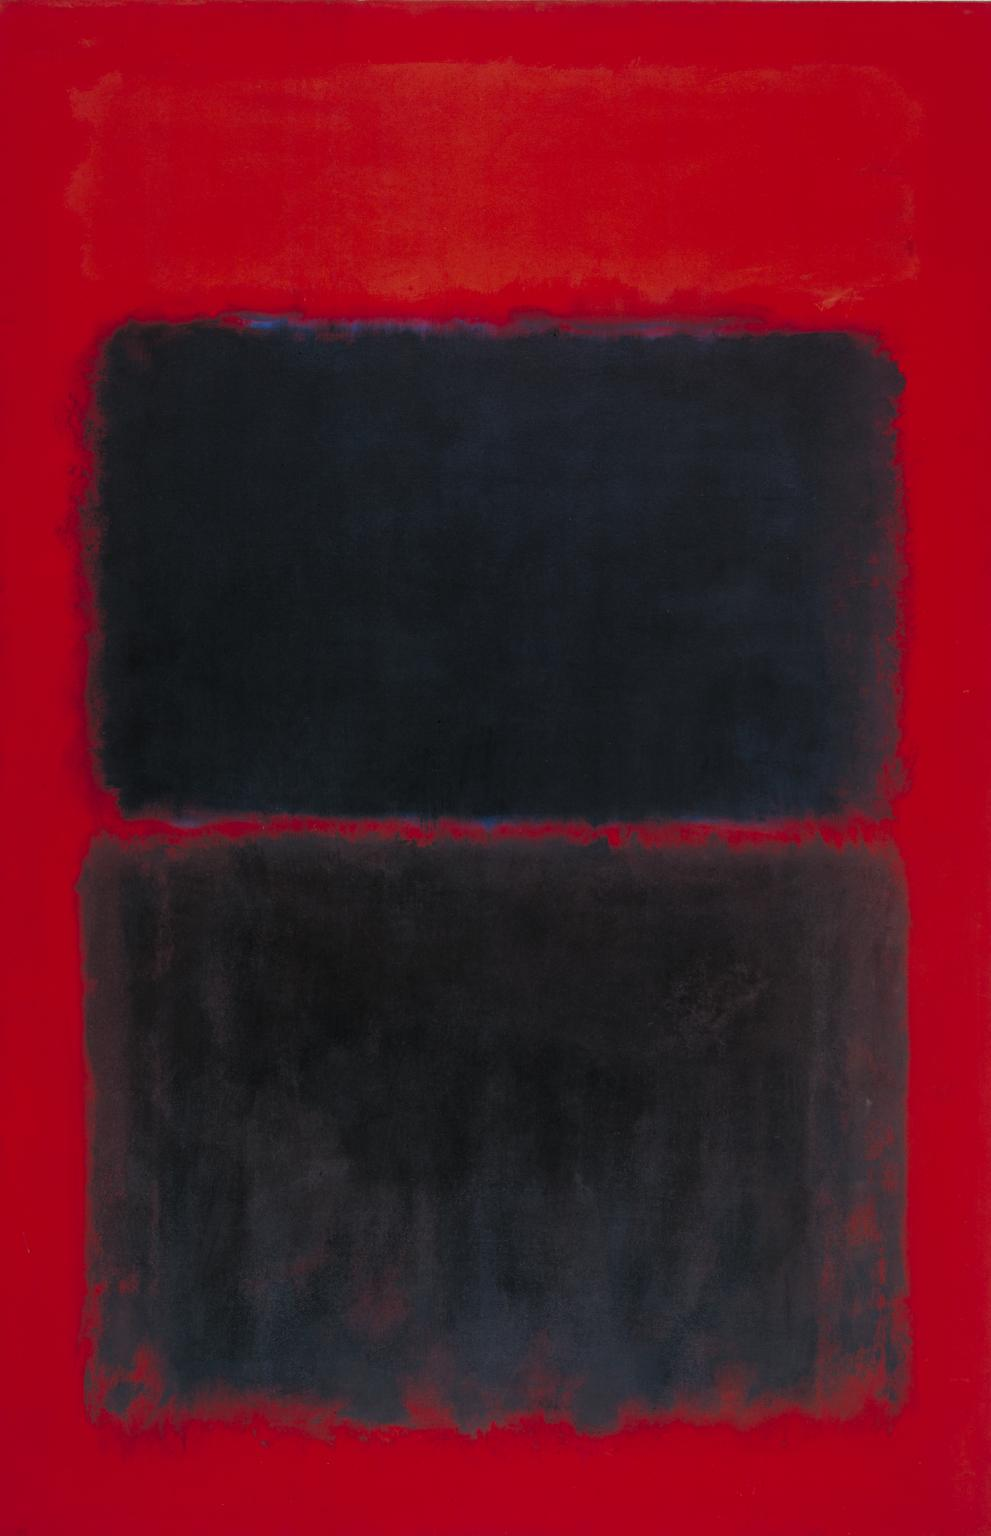 Light Red Over Black (1957) by Mark Rothko